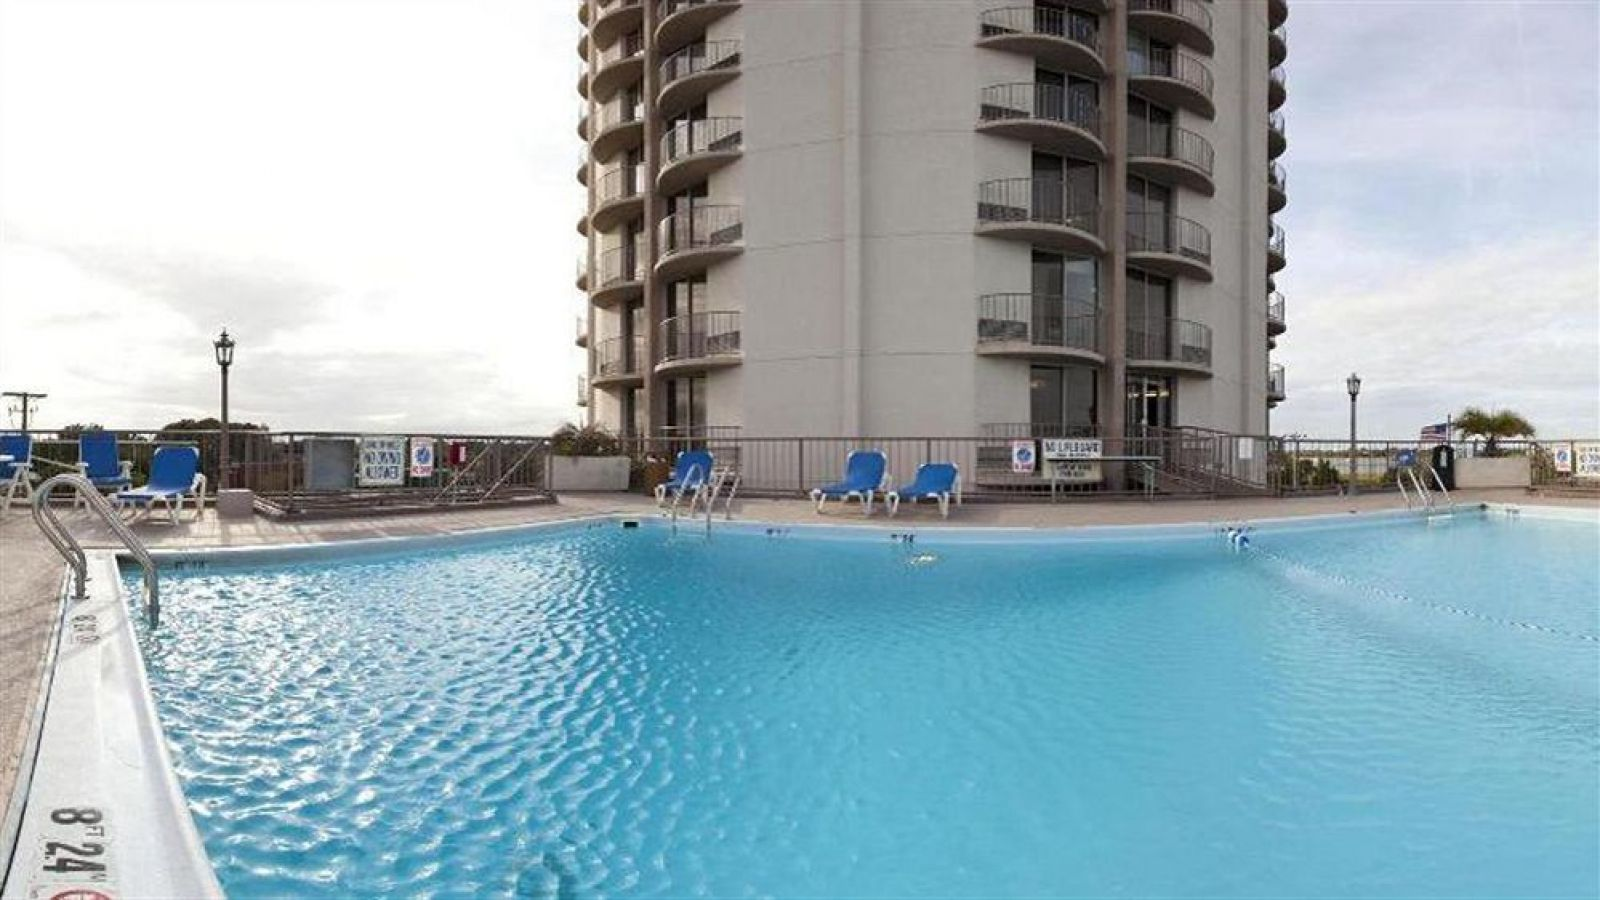 Holiday Inn Charleston Riverview - pool area